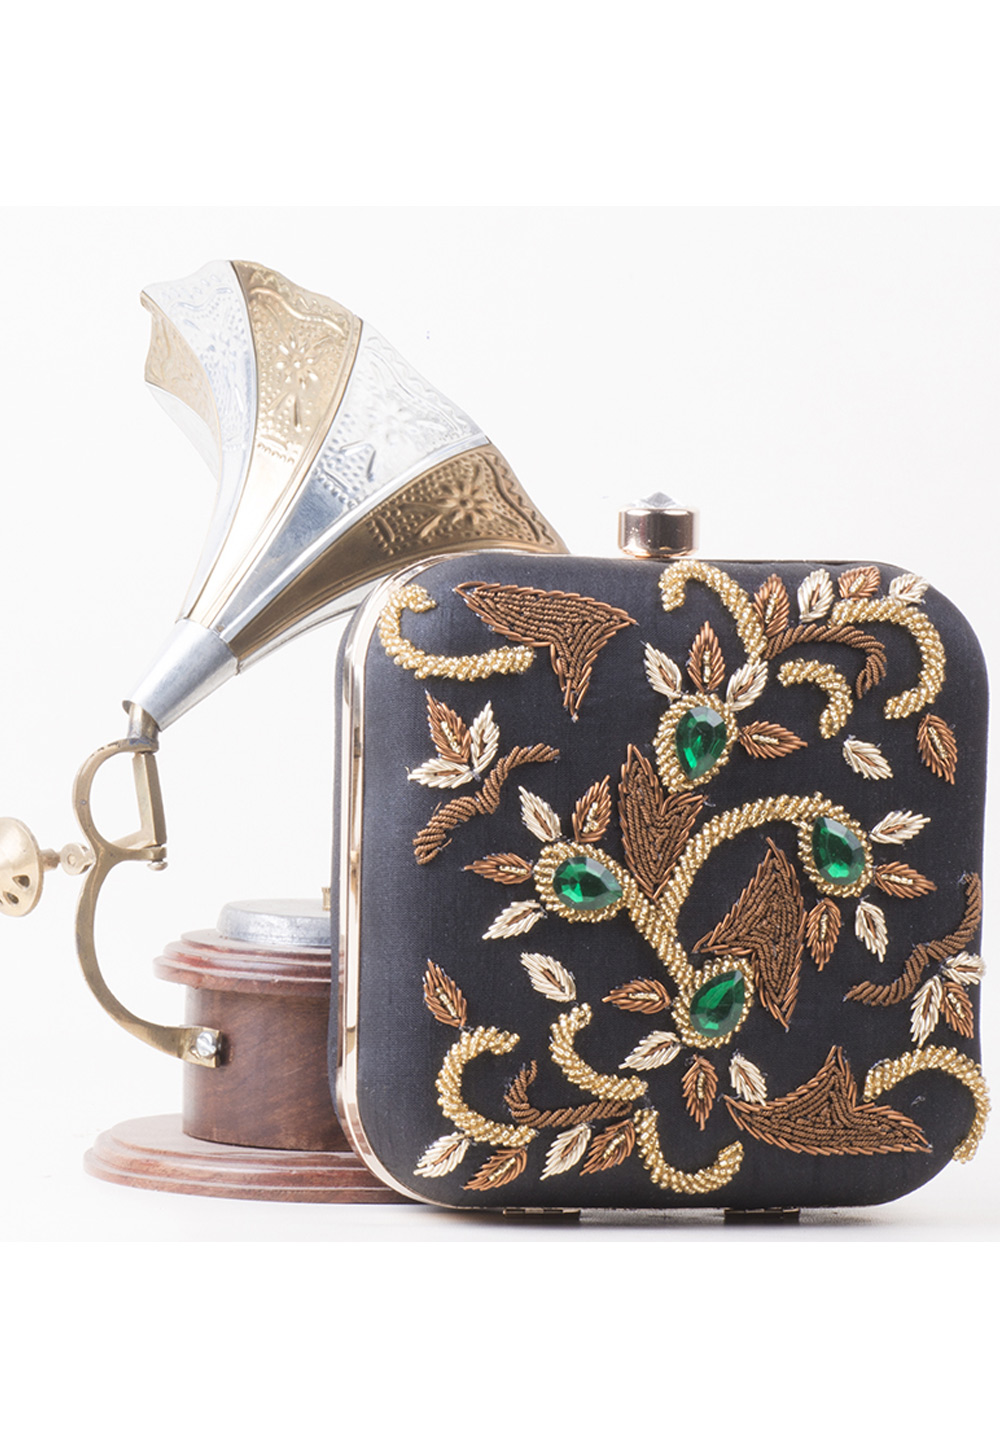 Dark Grey Synthetic Embroidered Clutch 172805